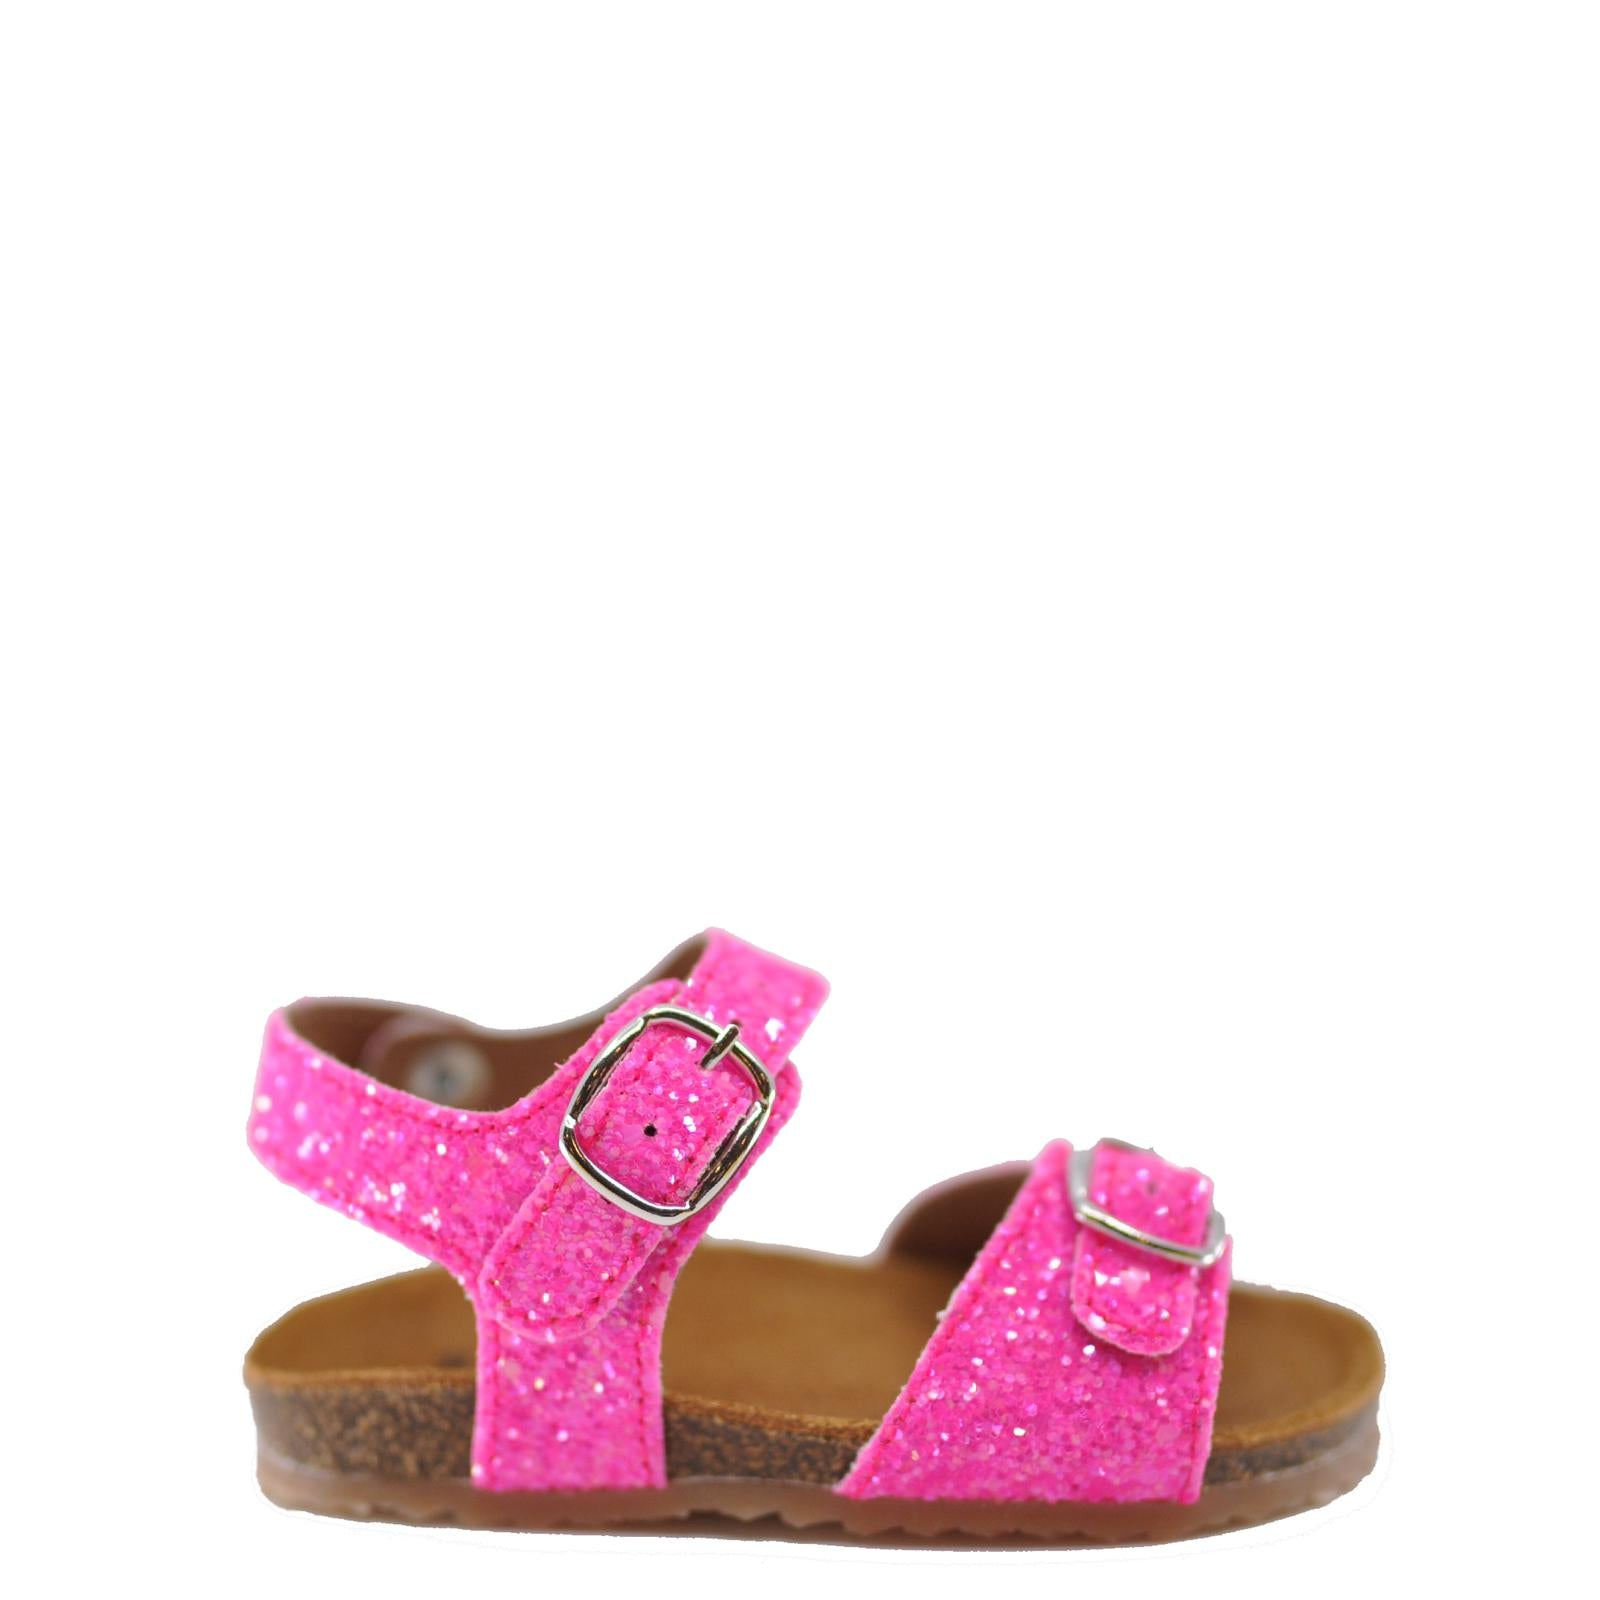 Pepe Neon Pink Sparkle Sandal-Tassel Children Shoes